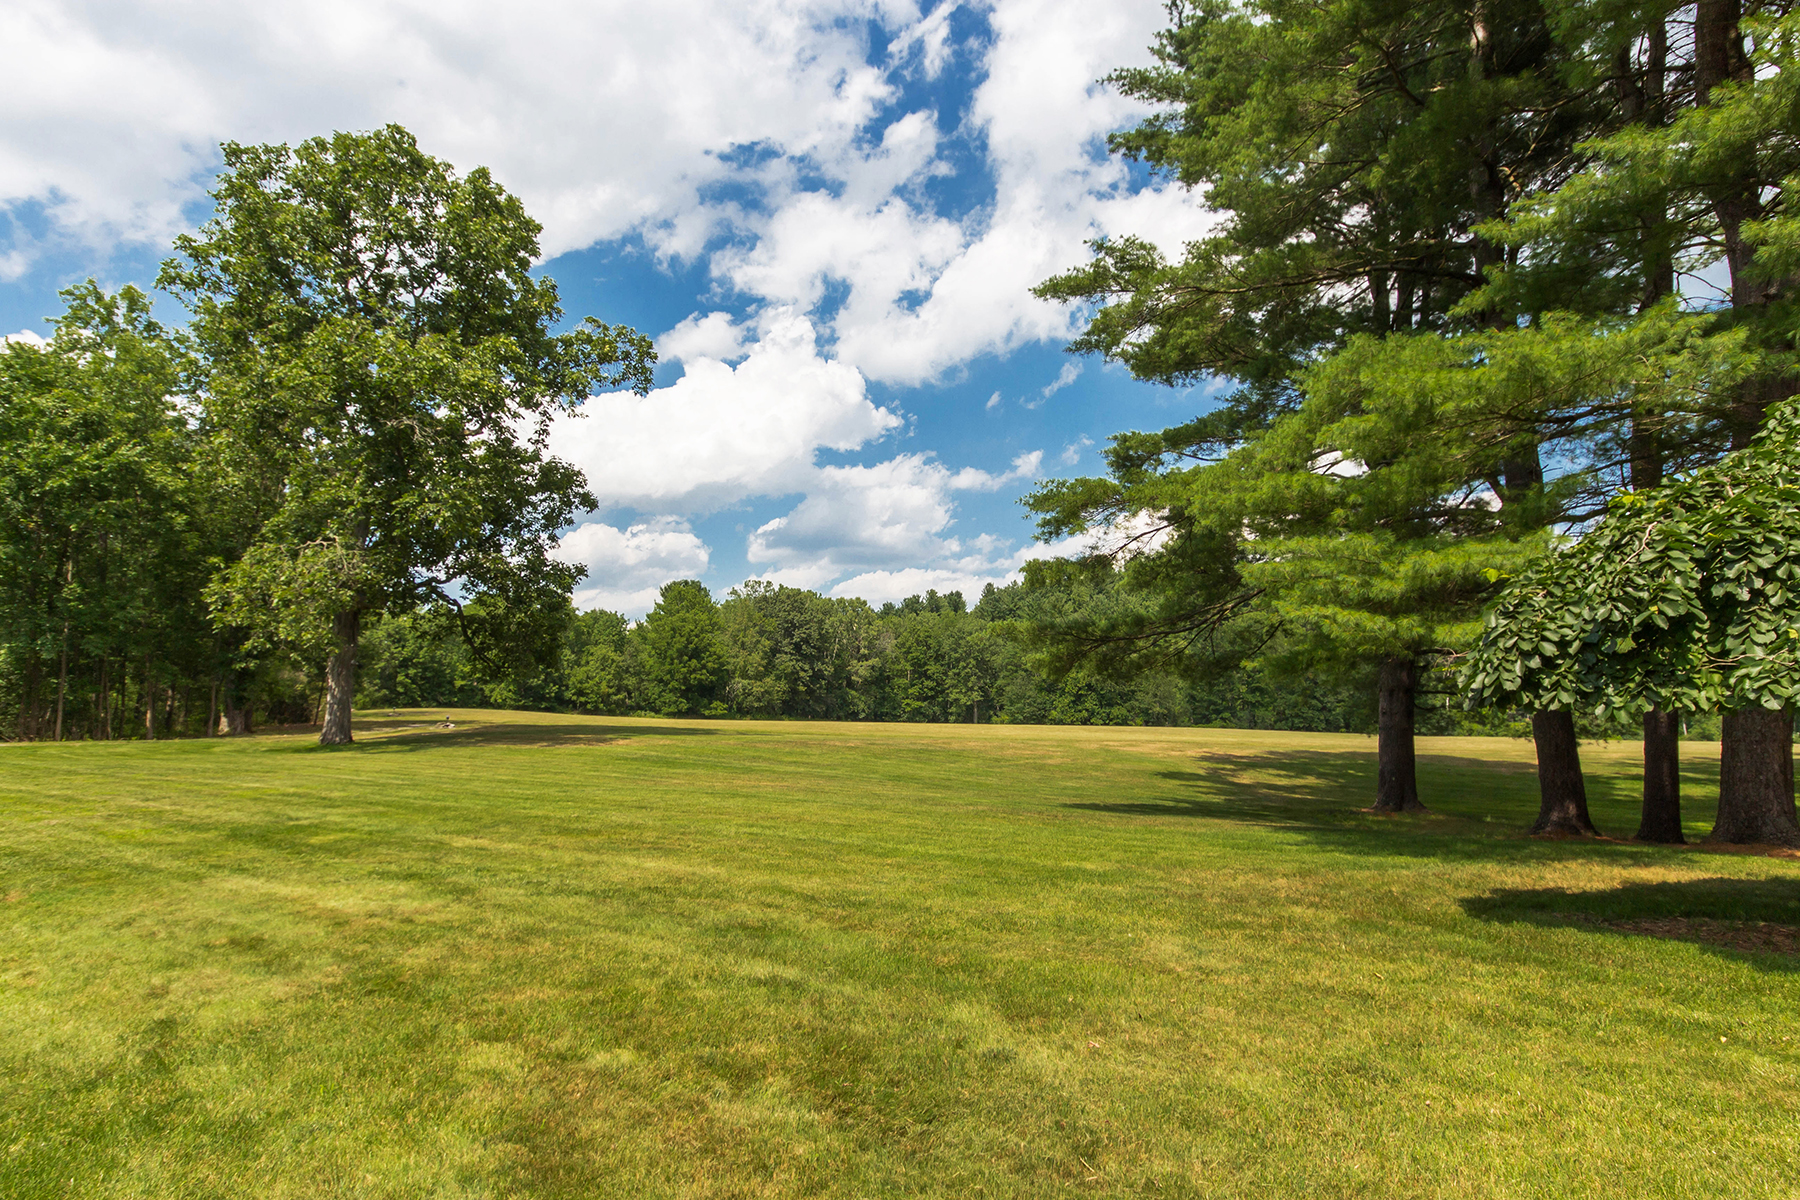 Additional photo for property listing at Nott Rd 9432  Nott Rd Guilderland, Nueva York 12084 Estados Unidos